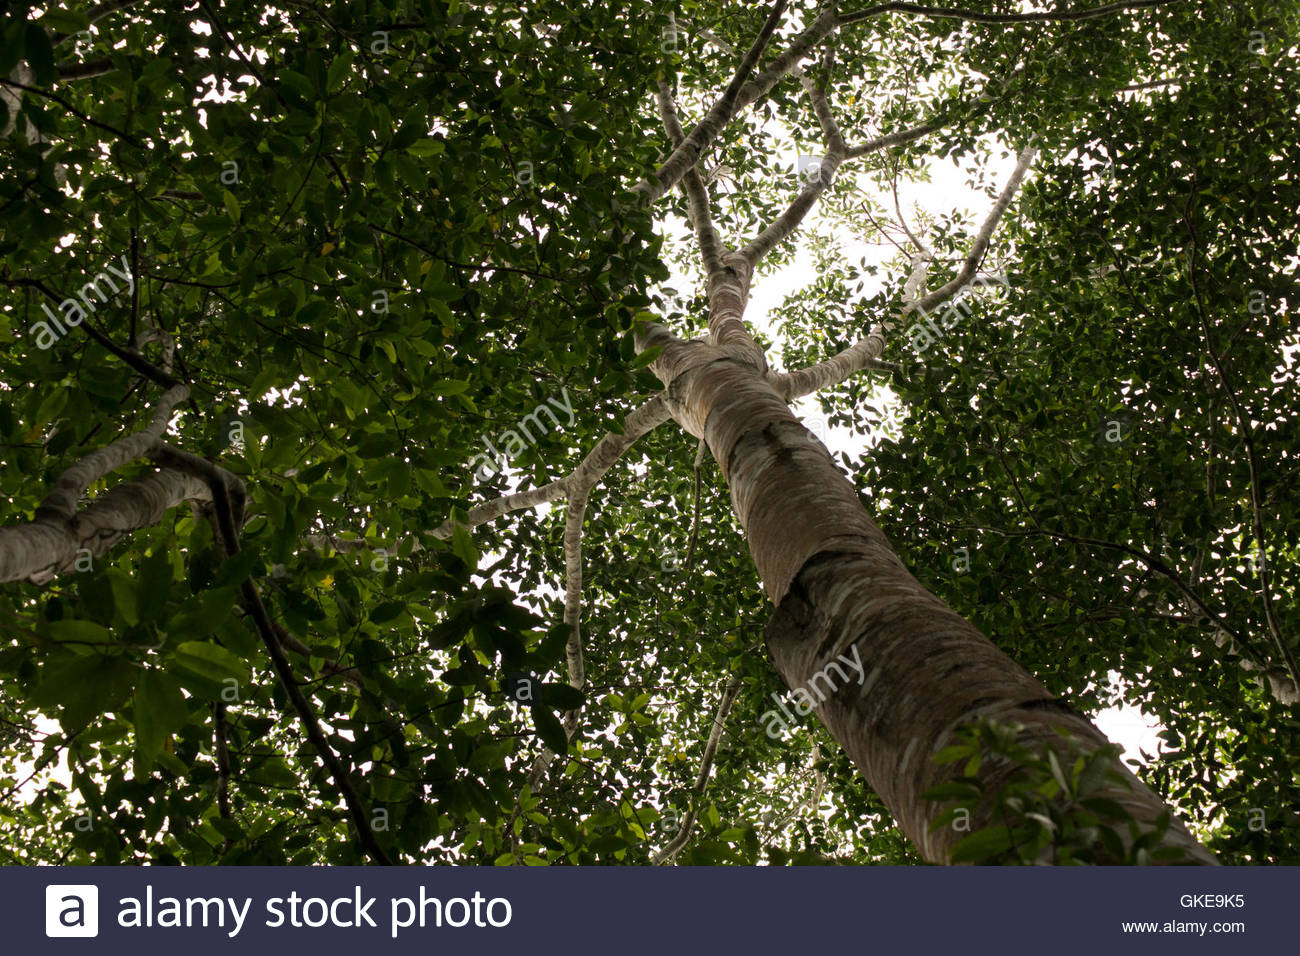 Crown of an Amazonian tree seen from a worm's eye shot, on the path to Sandoval Lake, Tambopata, Peru - Stock Image